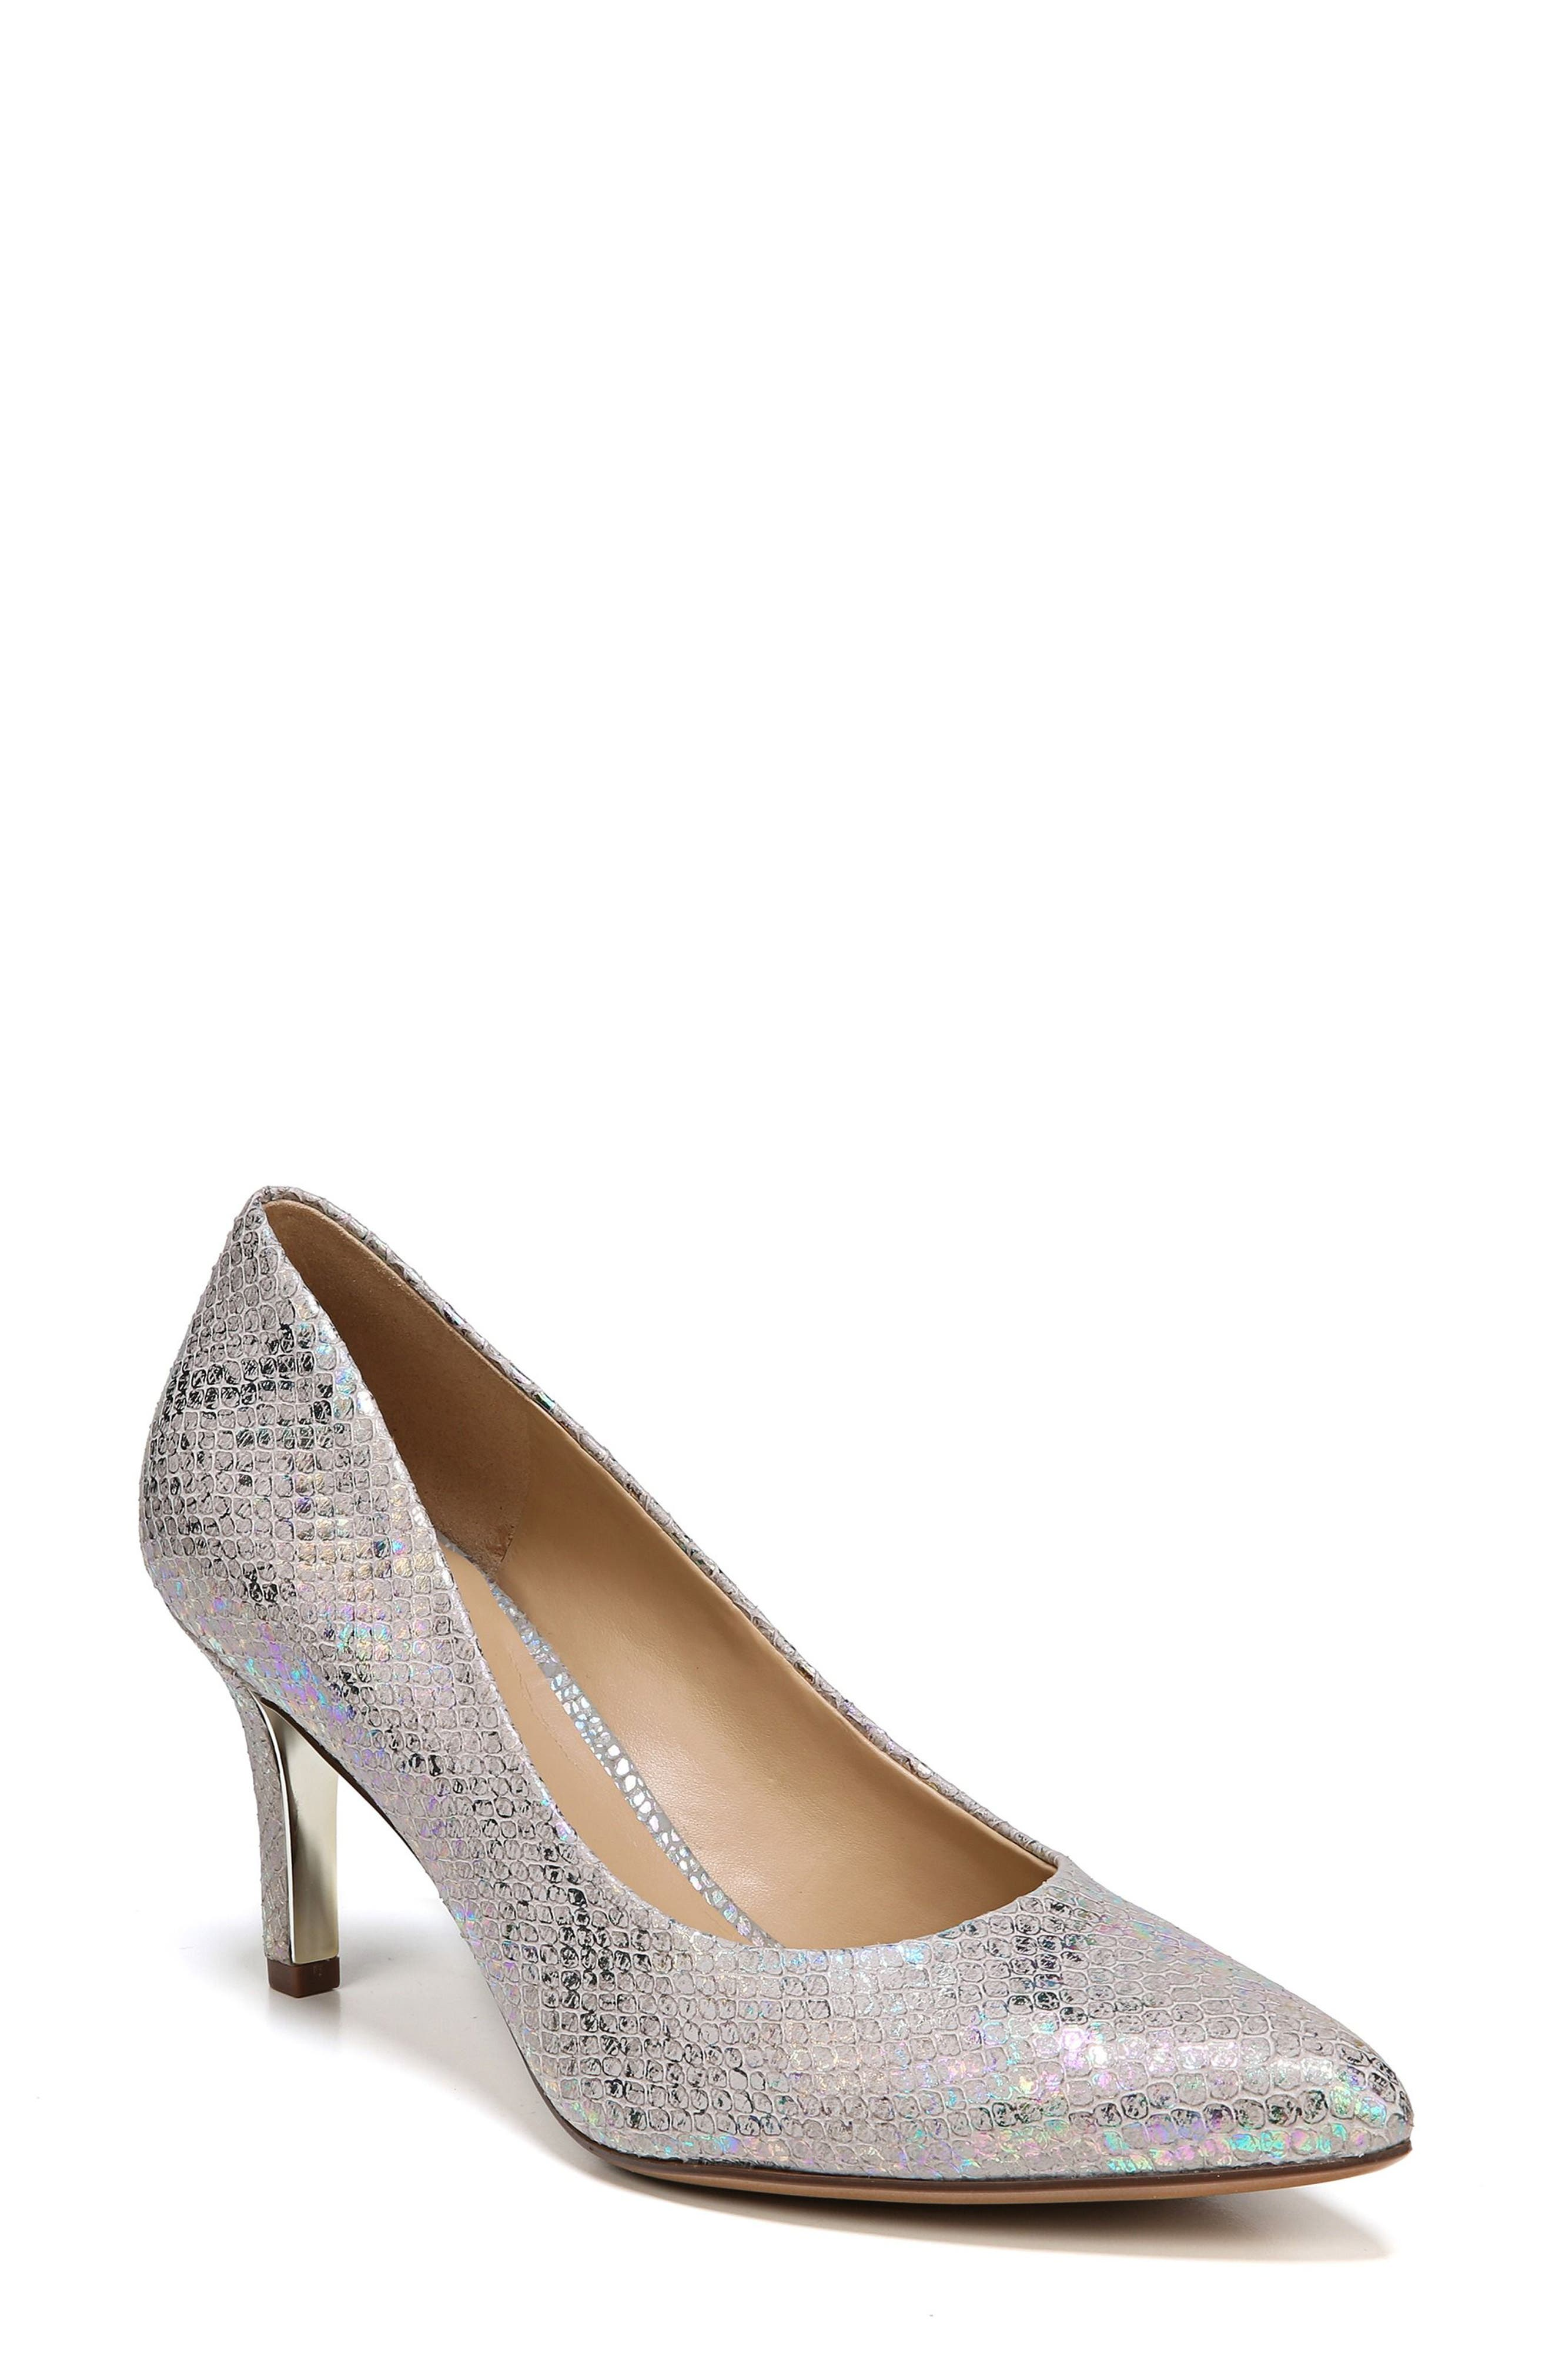 Natalie Pointy Toe Pump,                         Main,                         color, Silver Snake Print Leather